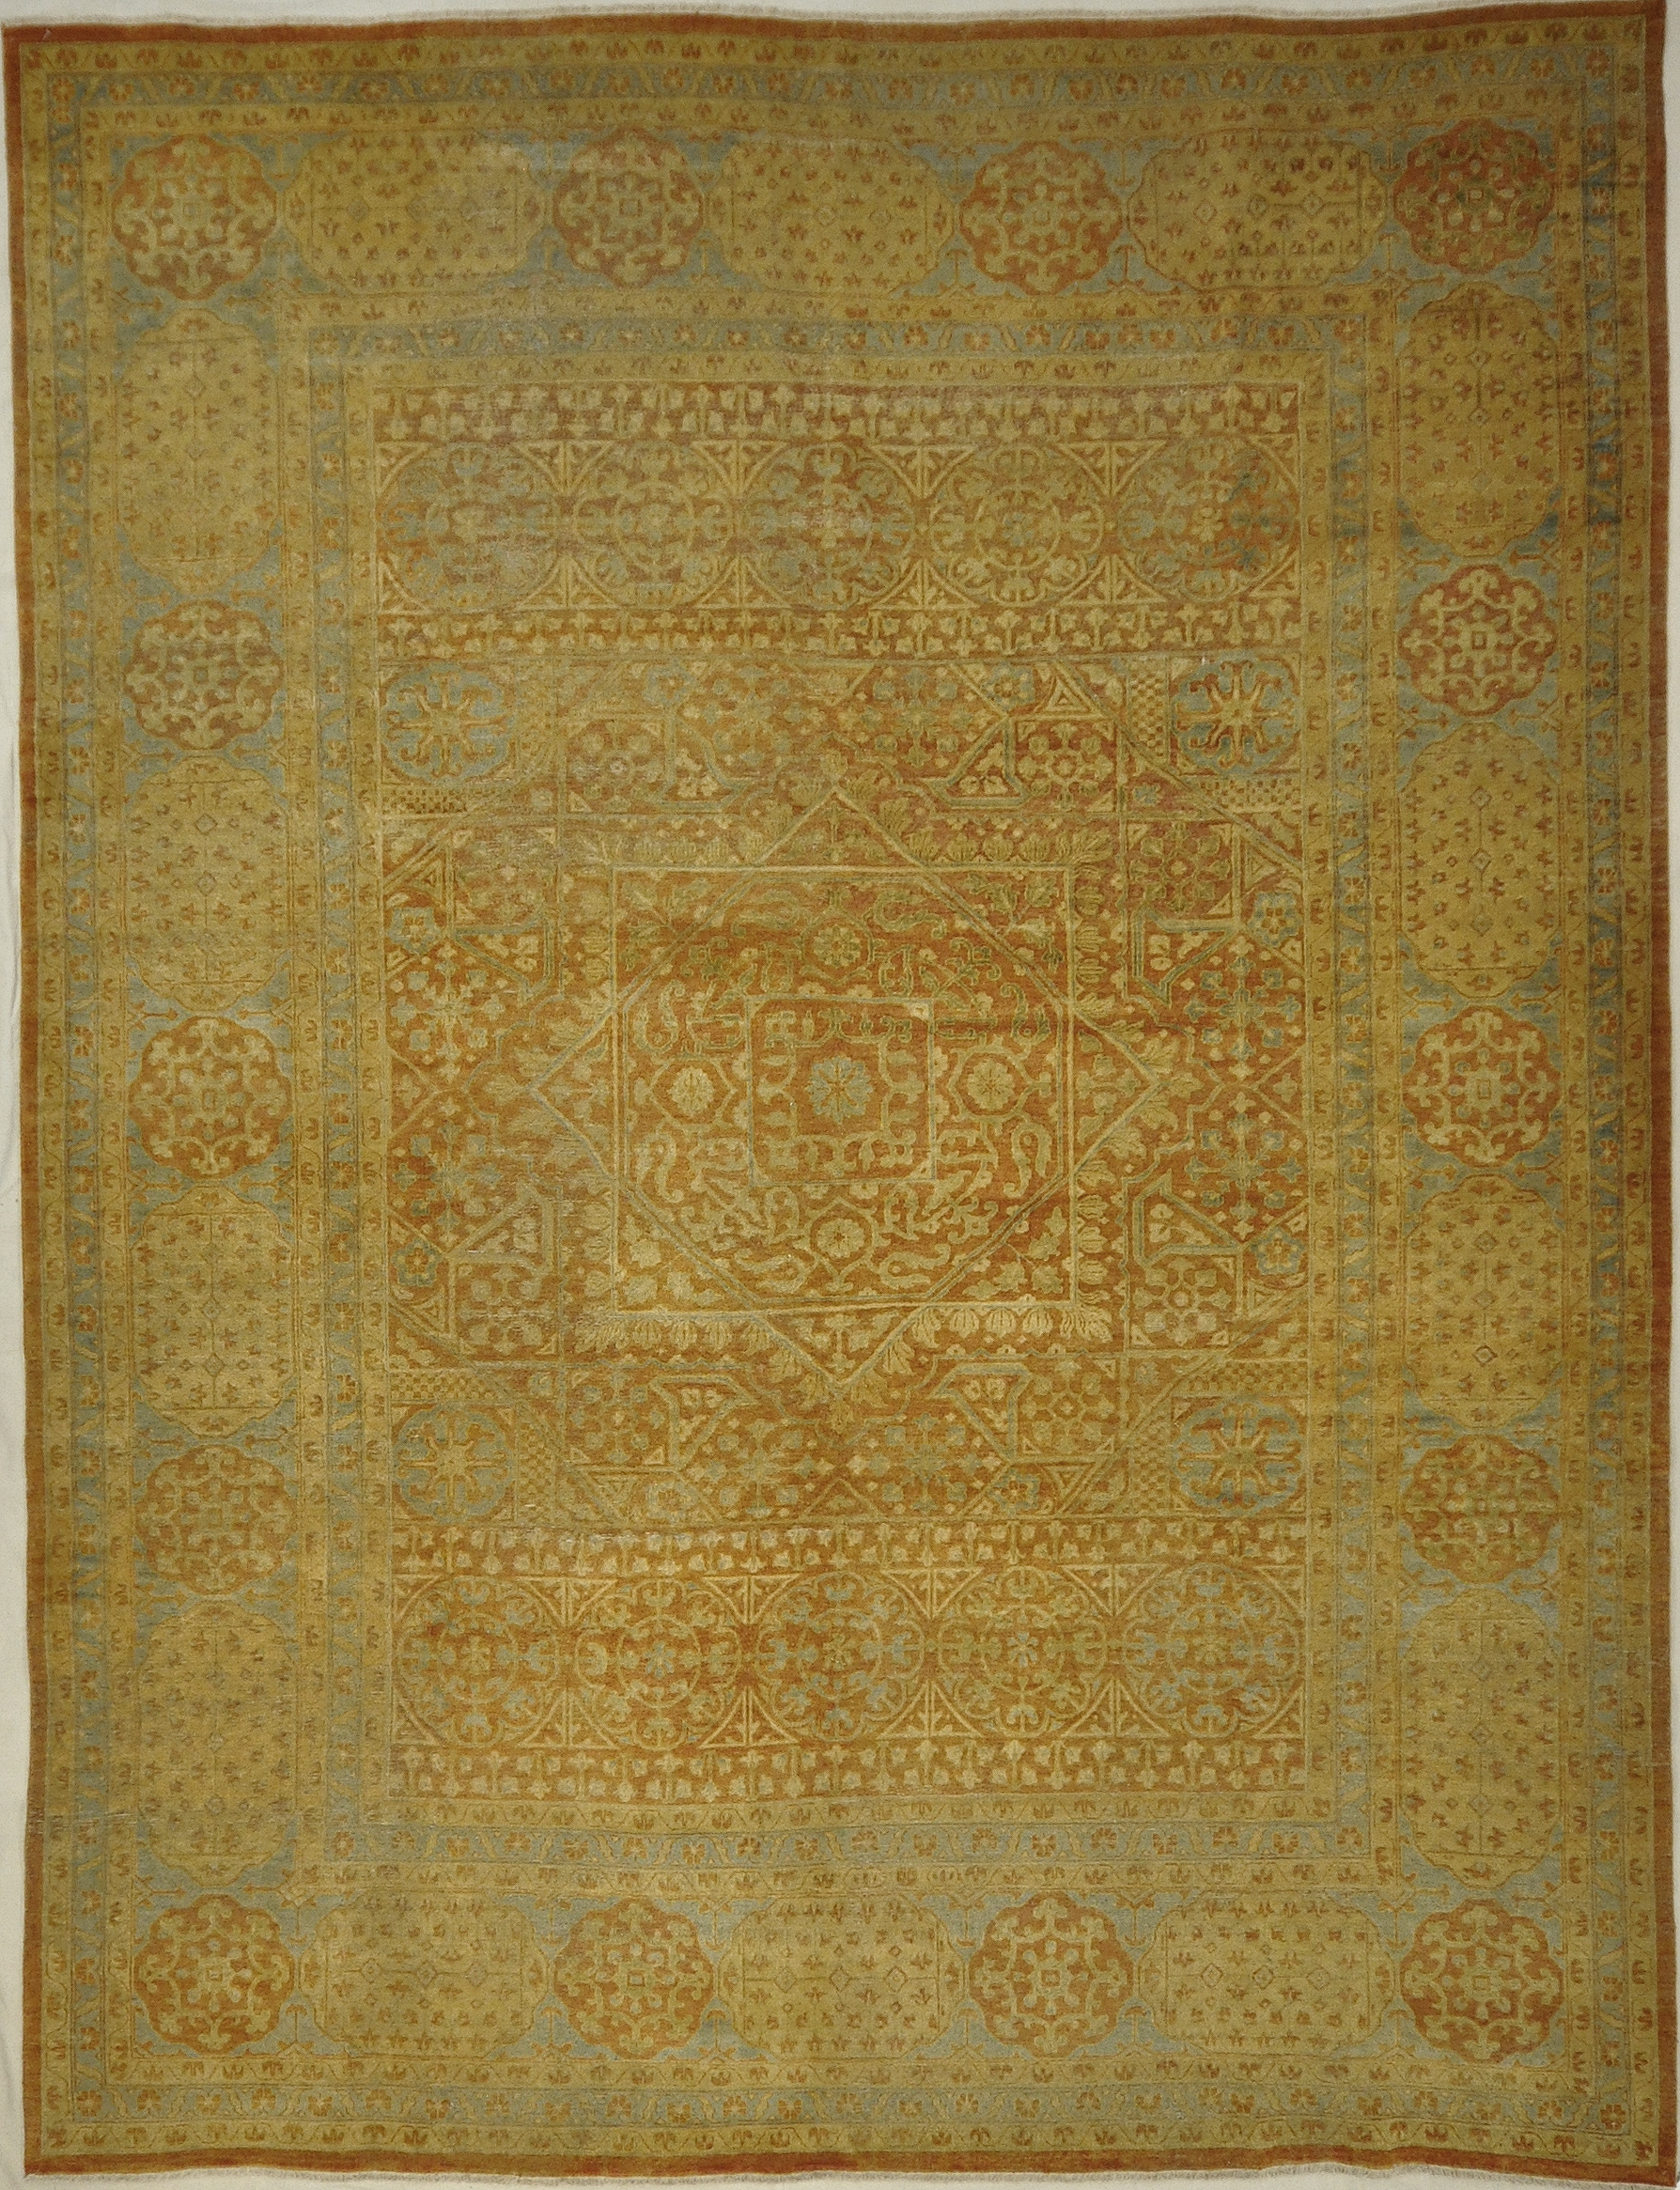 Antique Light Blue and Terra Mamluk Rug. A piece of genuine woven carpet art sold by the Santa Barbara Design Center, Rugs and More.